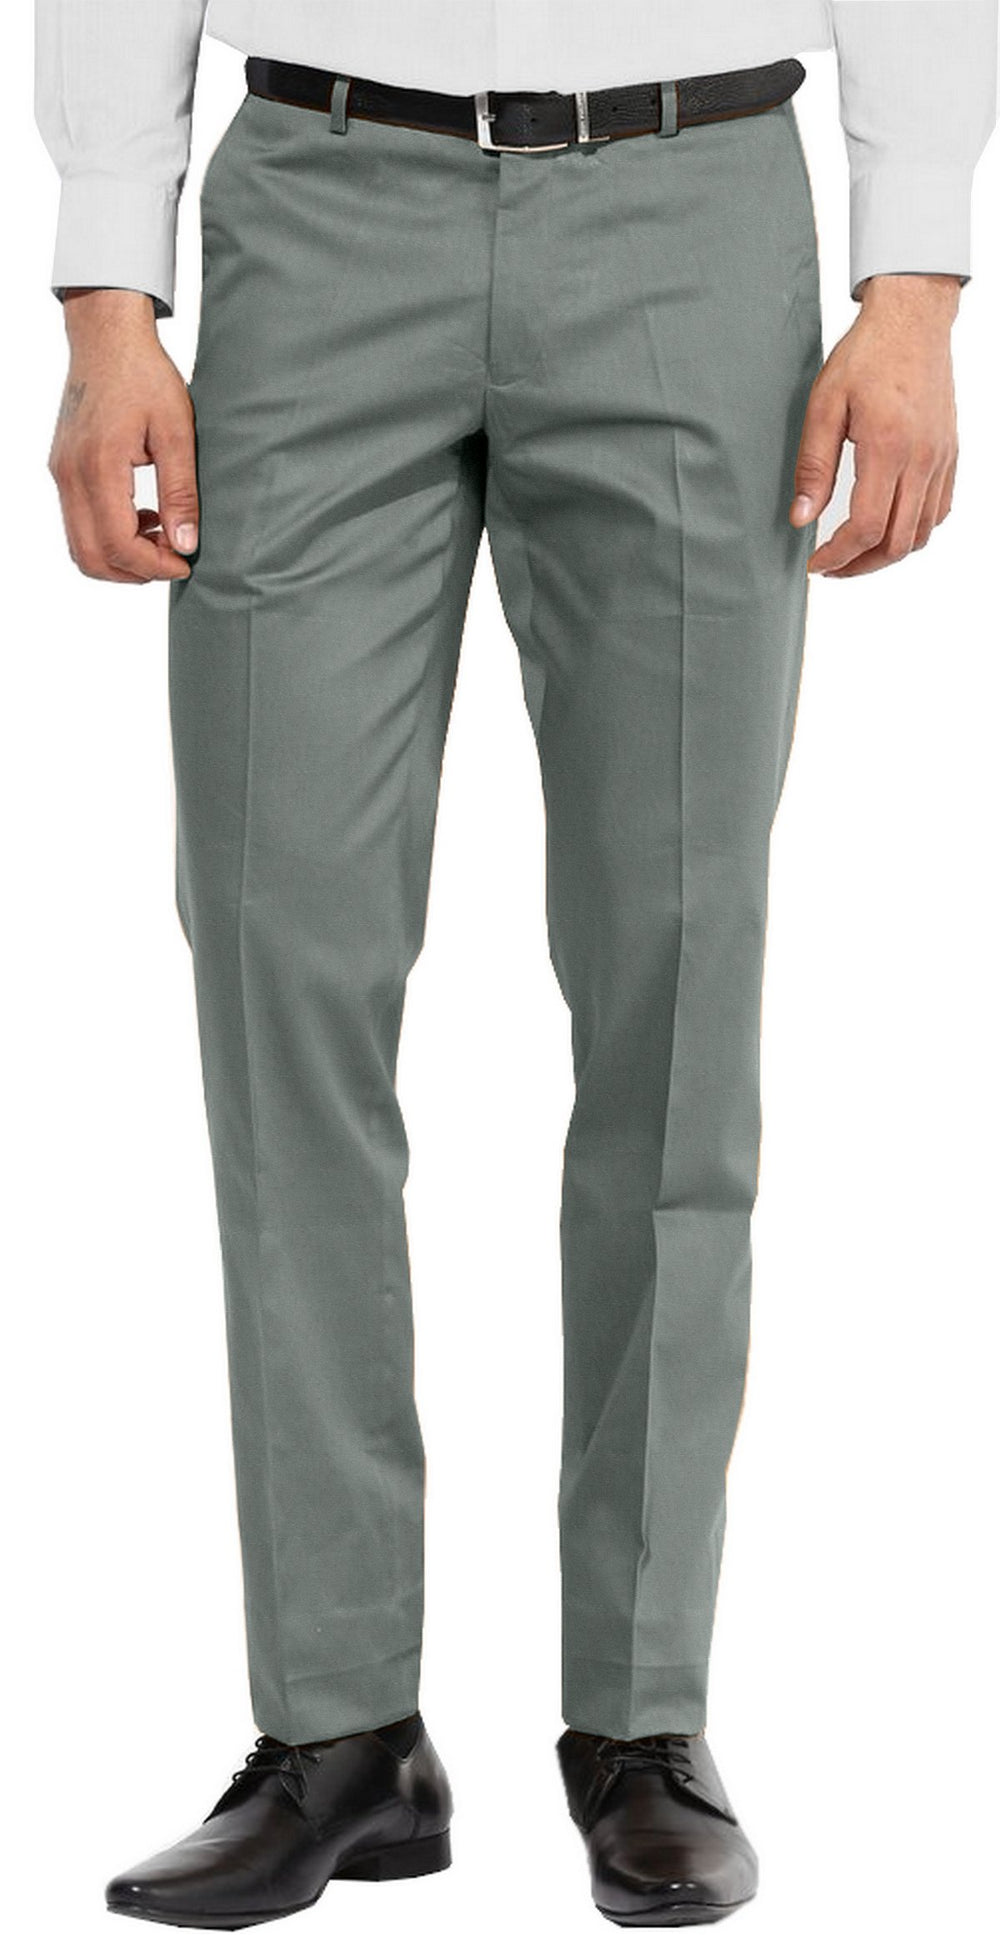 Dugdale Fine Worsted Pant - Light Mint (124839162)